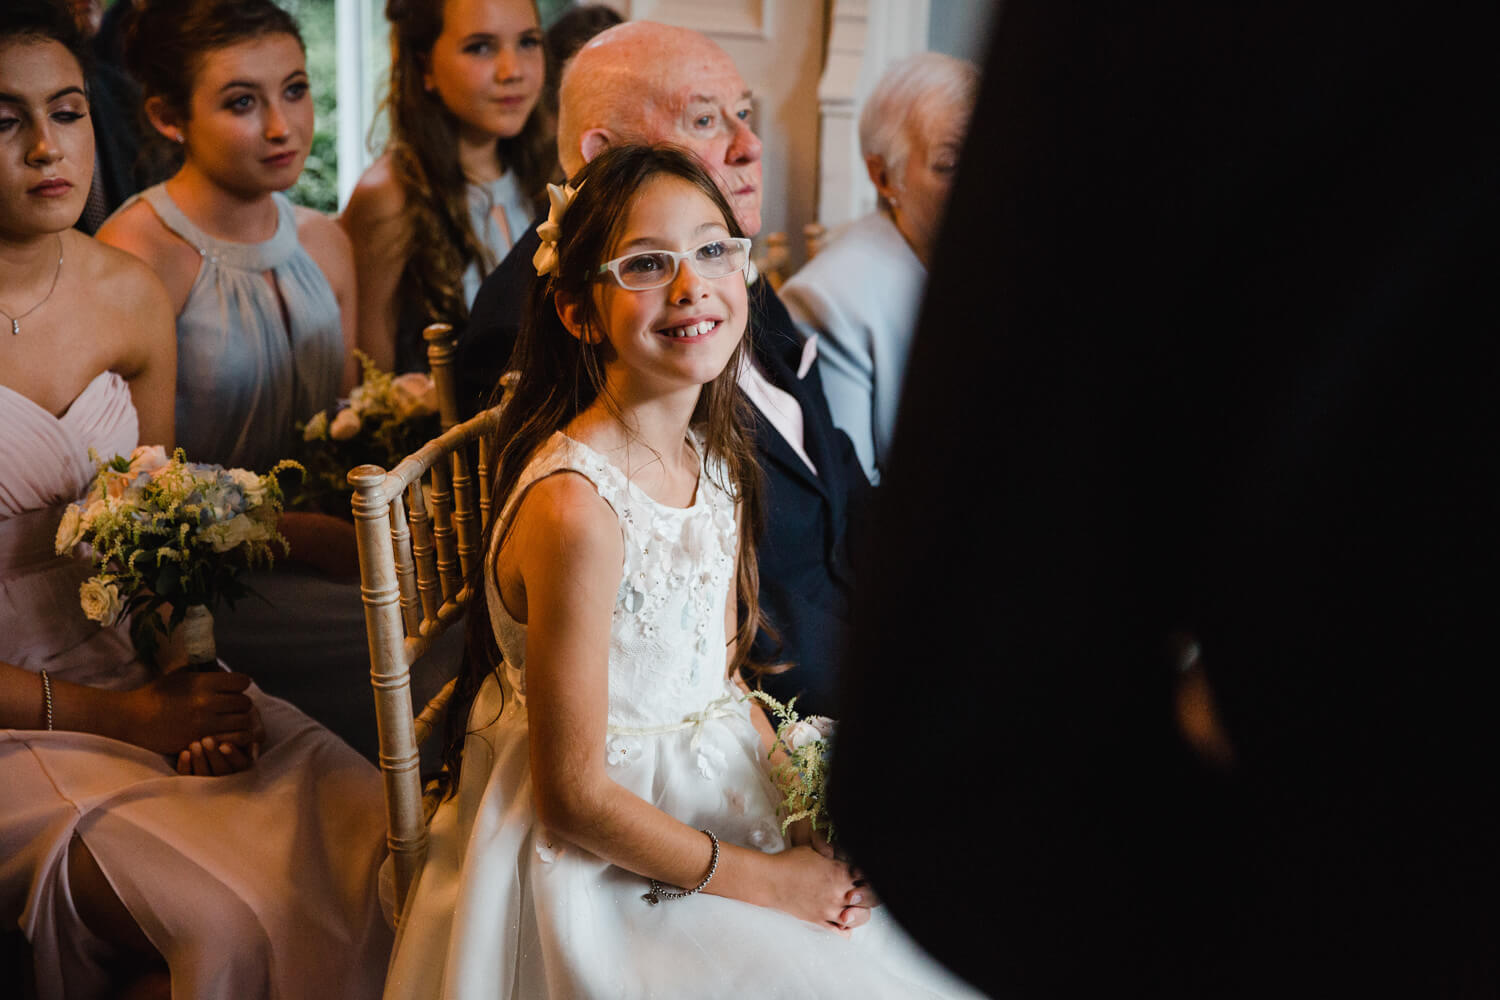 close up macro lens photograph of flower girl looking at bride and groom in foreground